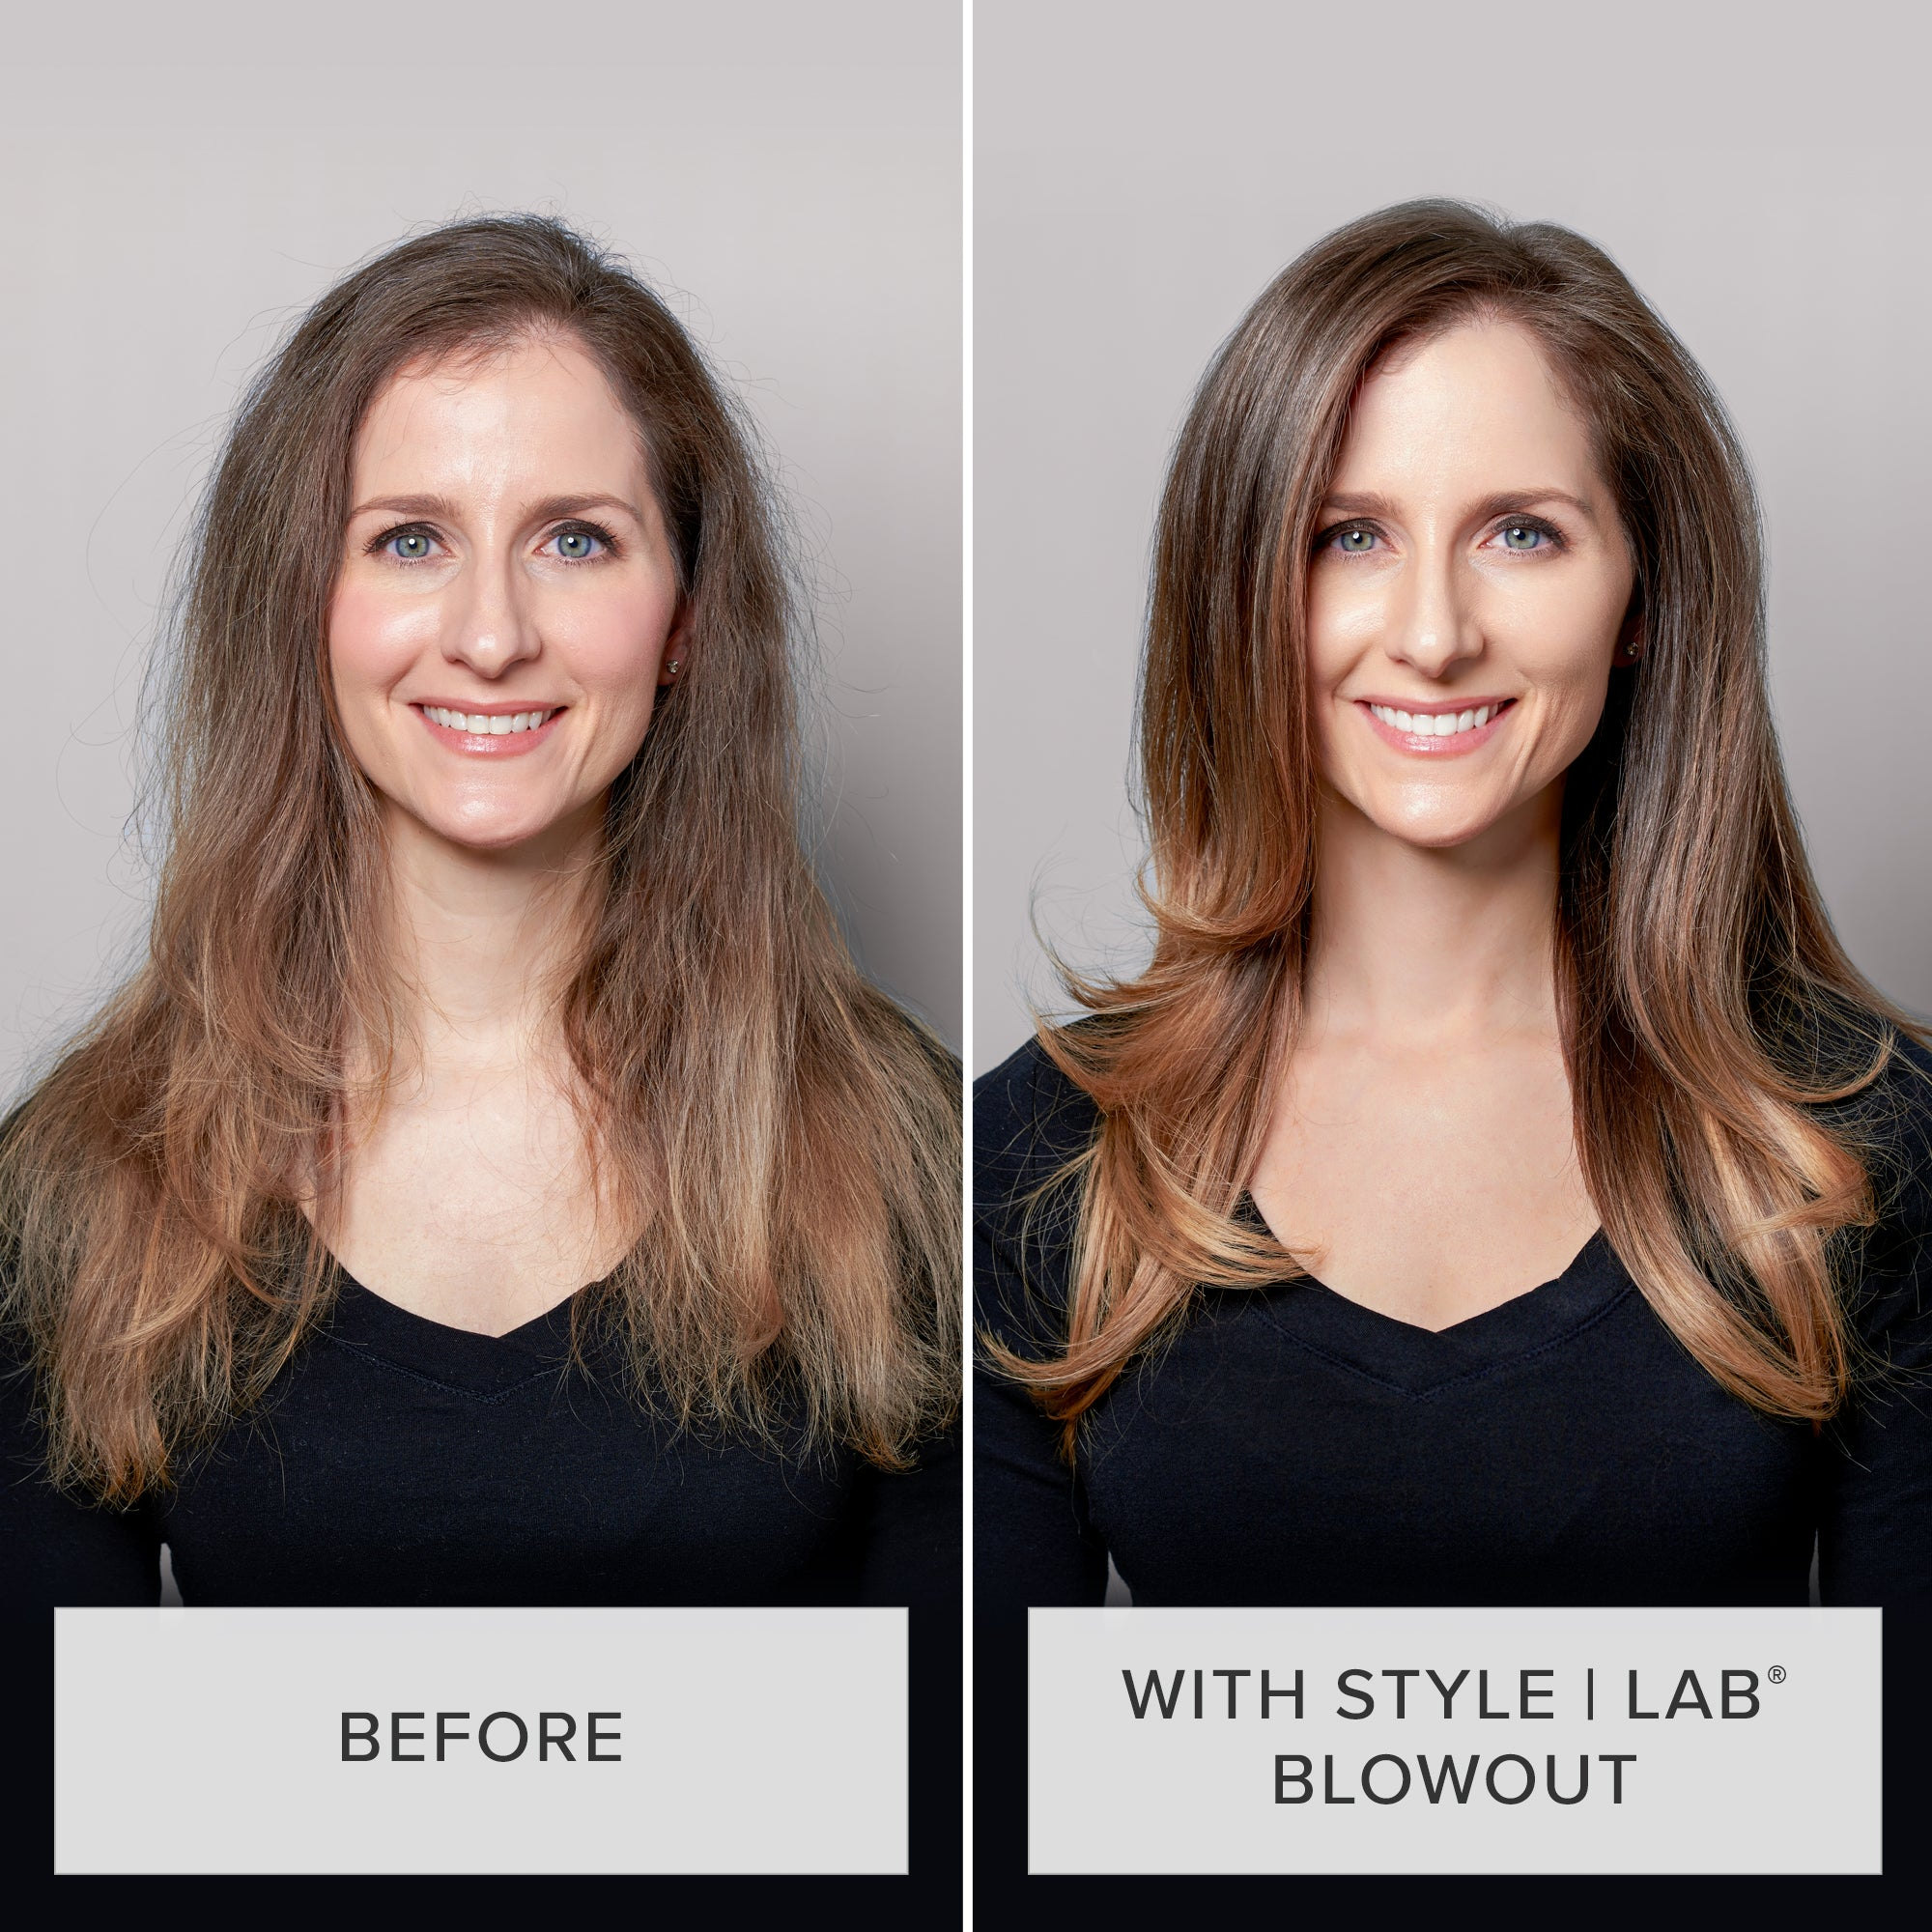 Style Lab® Blowout